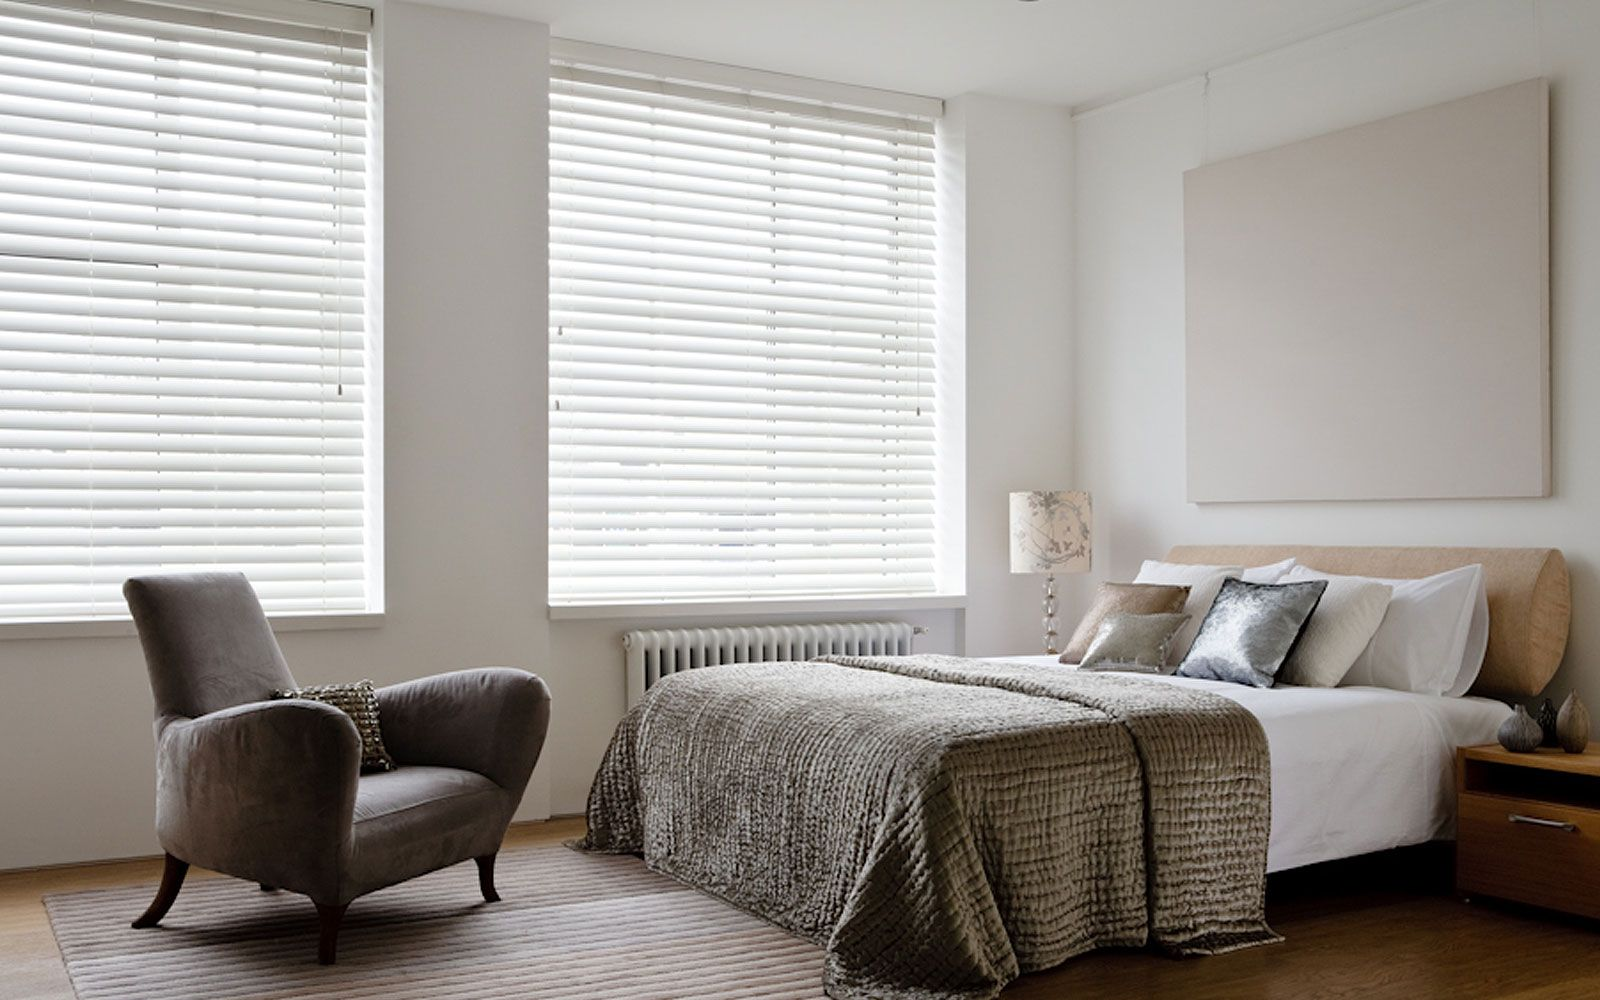 Blinds on the windows: tips on choosing 12